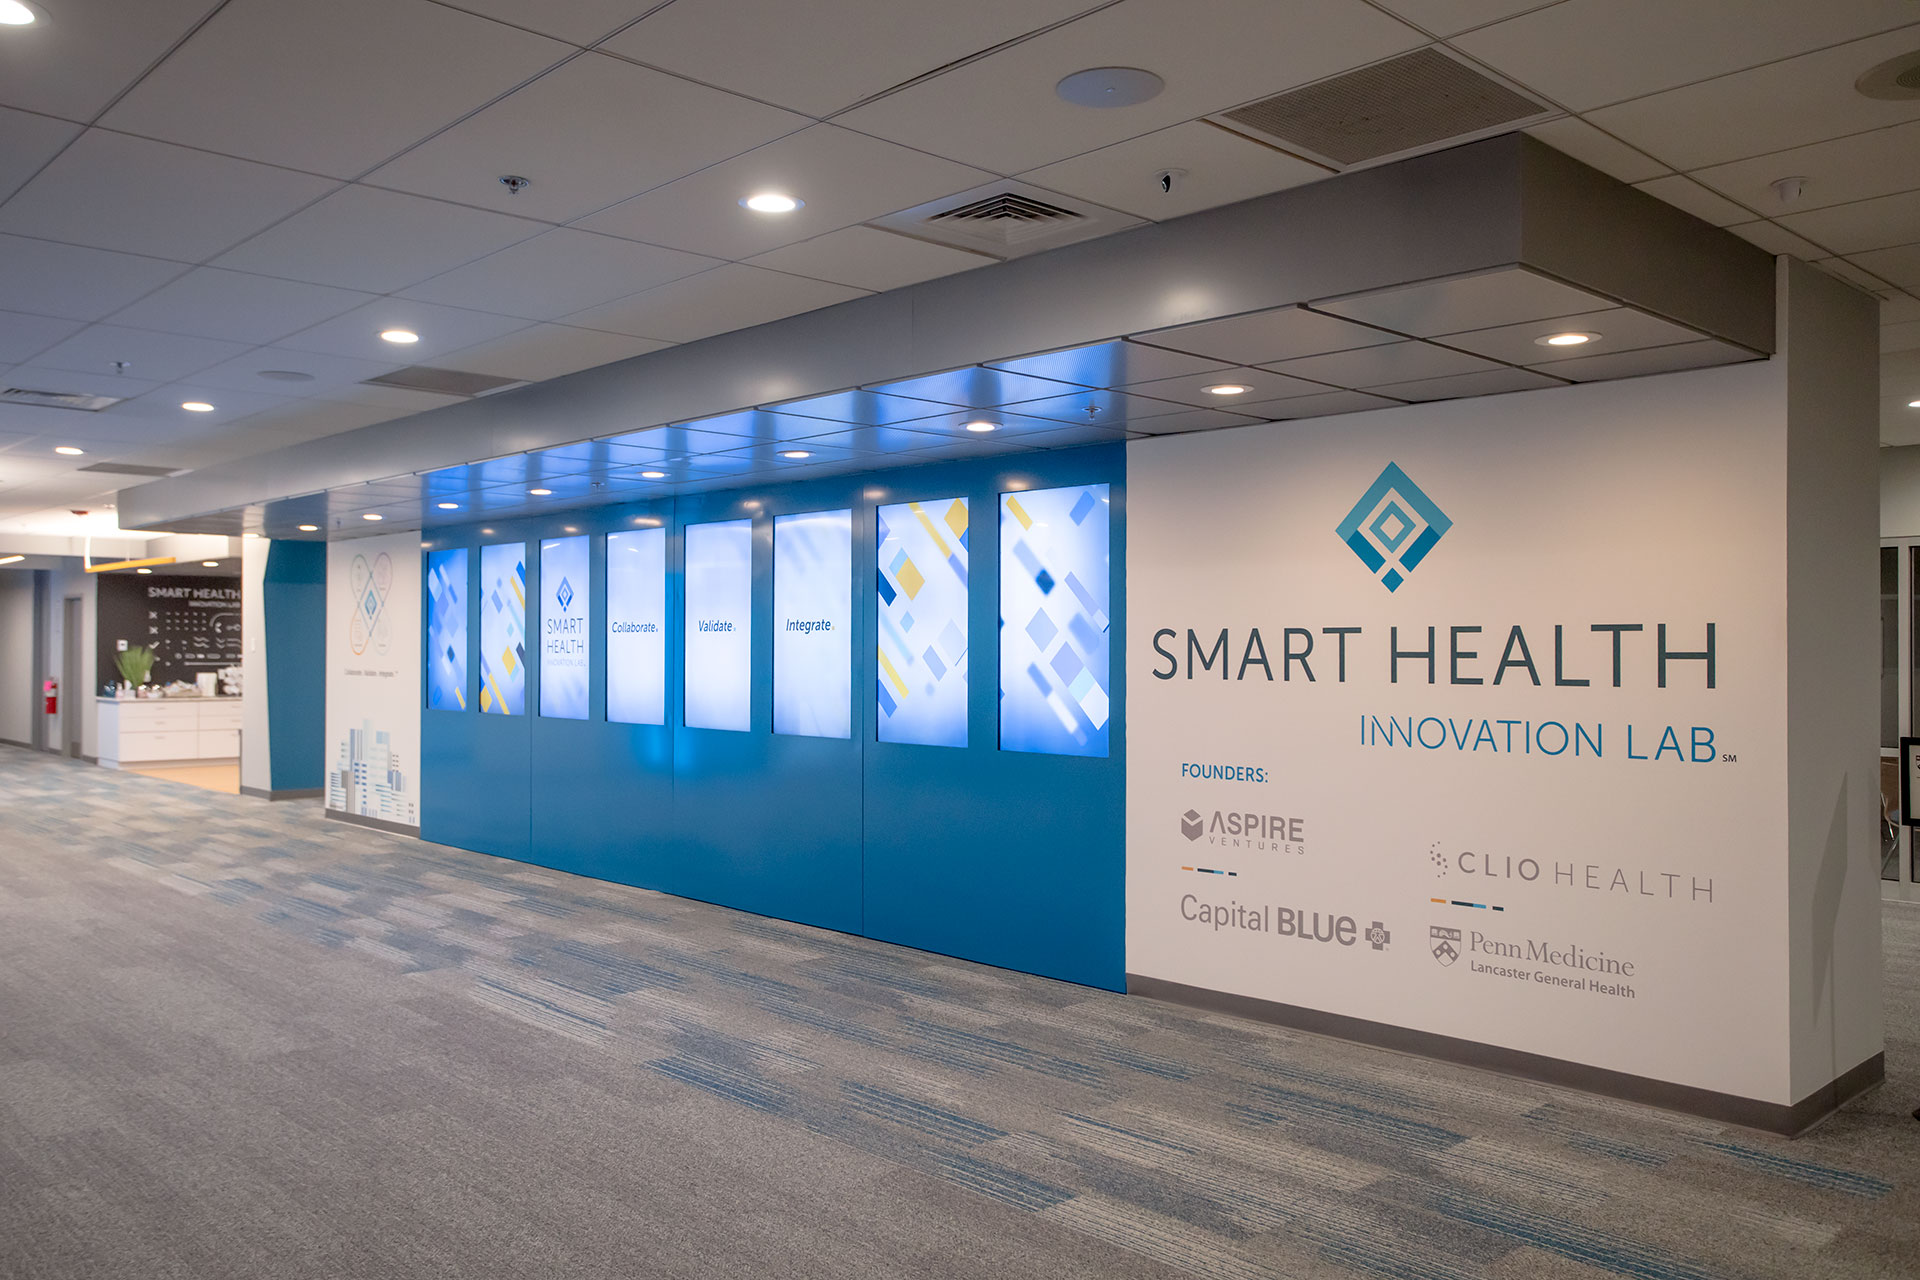 Smart Health Innovation Lab's lobby, feature 8 TVs in vertical orientation